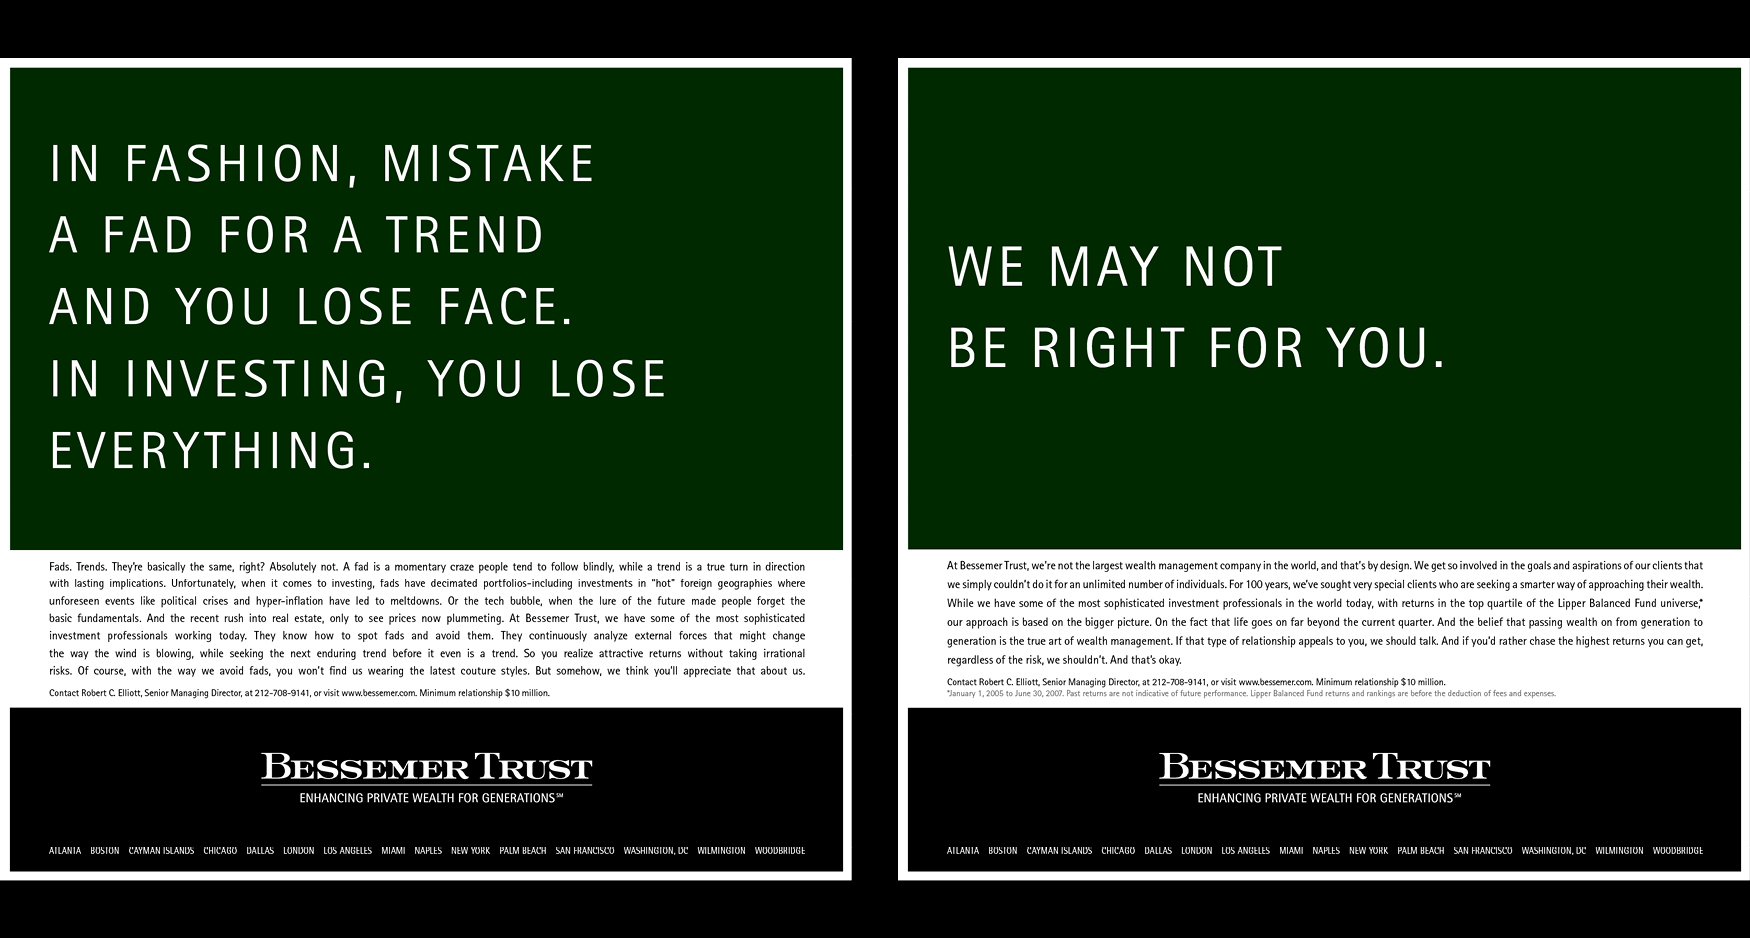 BP Large Images24 - BESSEMER TRUST - WEALTH MANAGEMENT CAMPAIGN